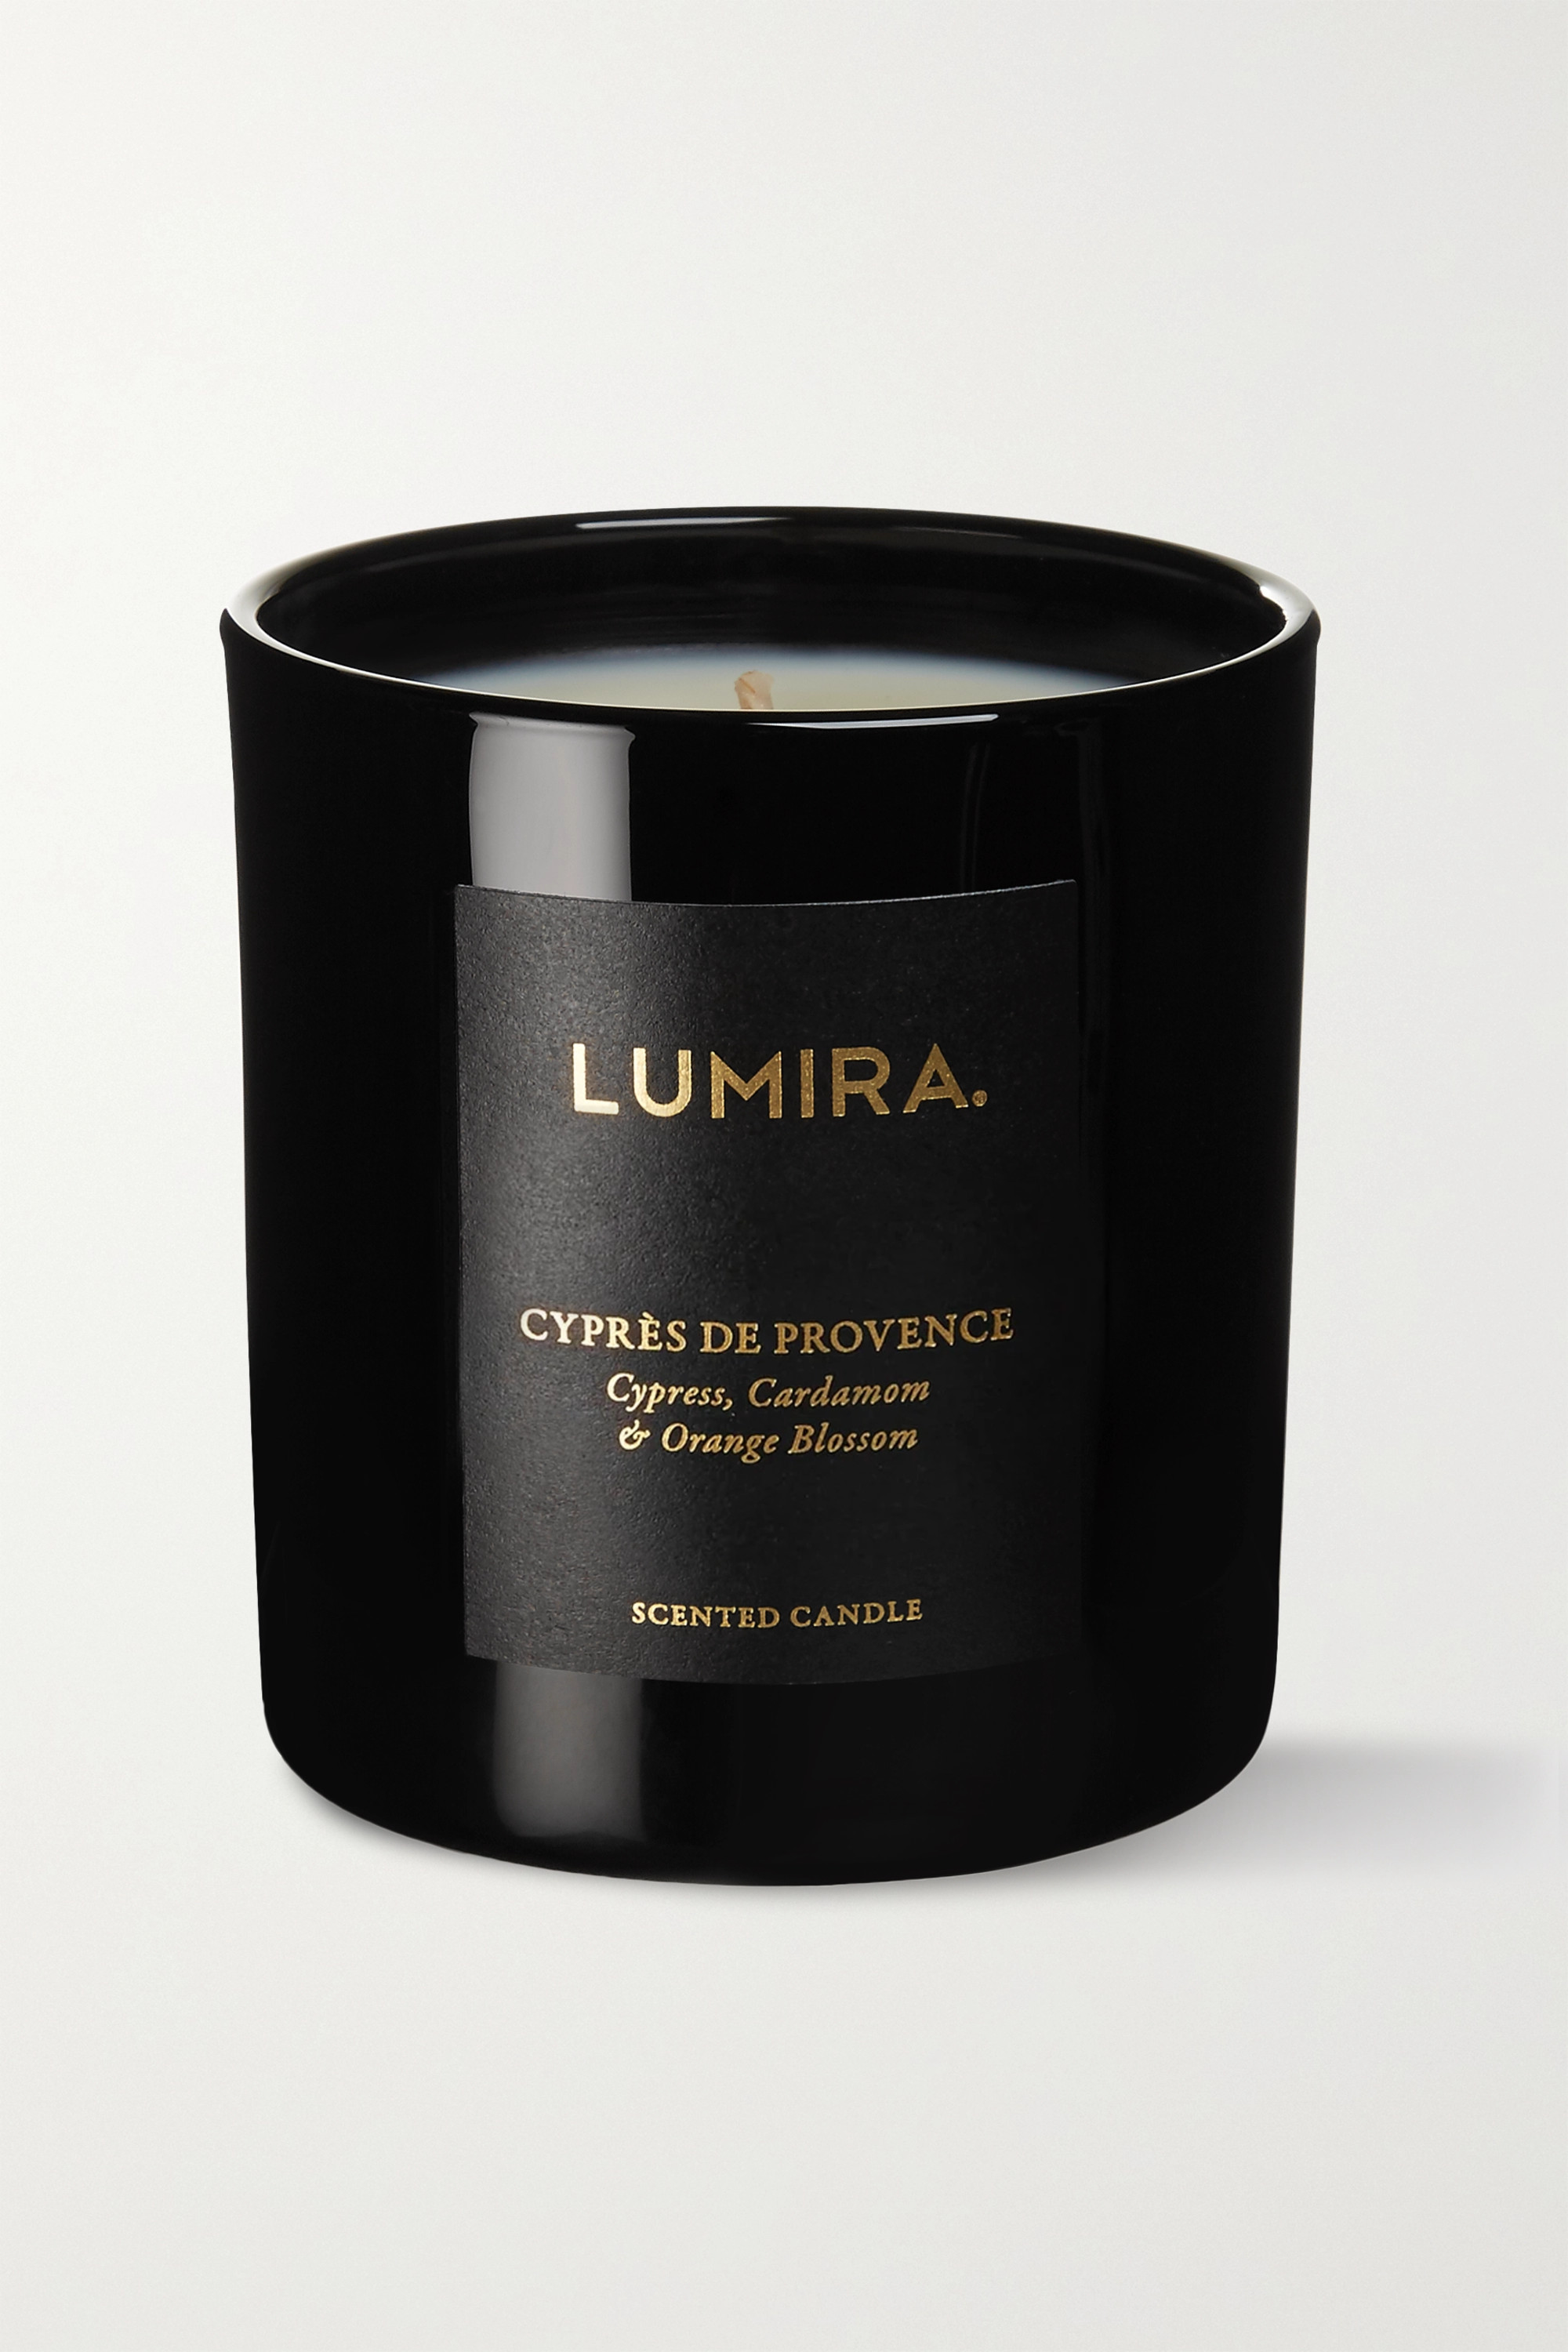 LUMIRA Cyprès de Provence scented candle, 300g